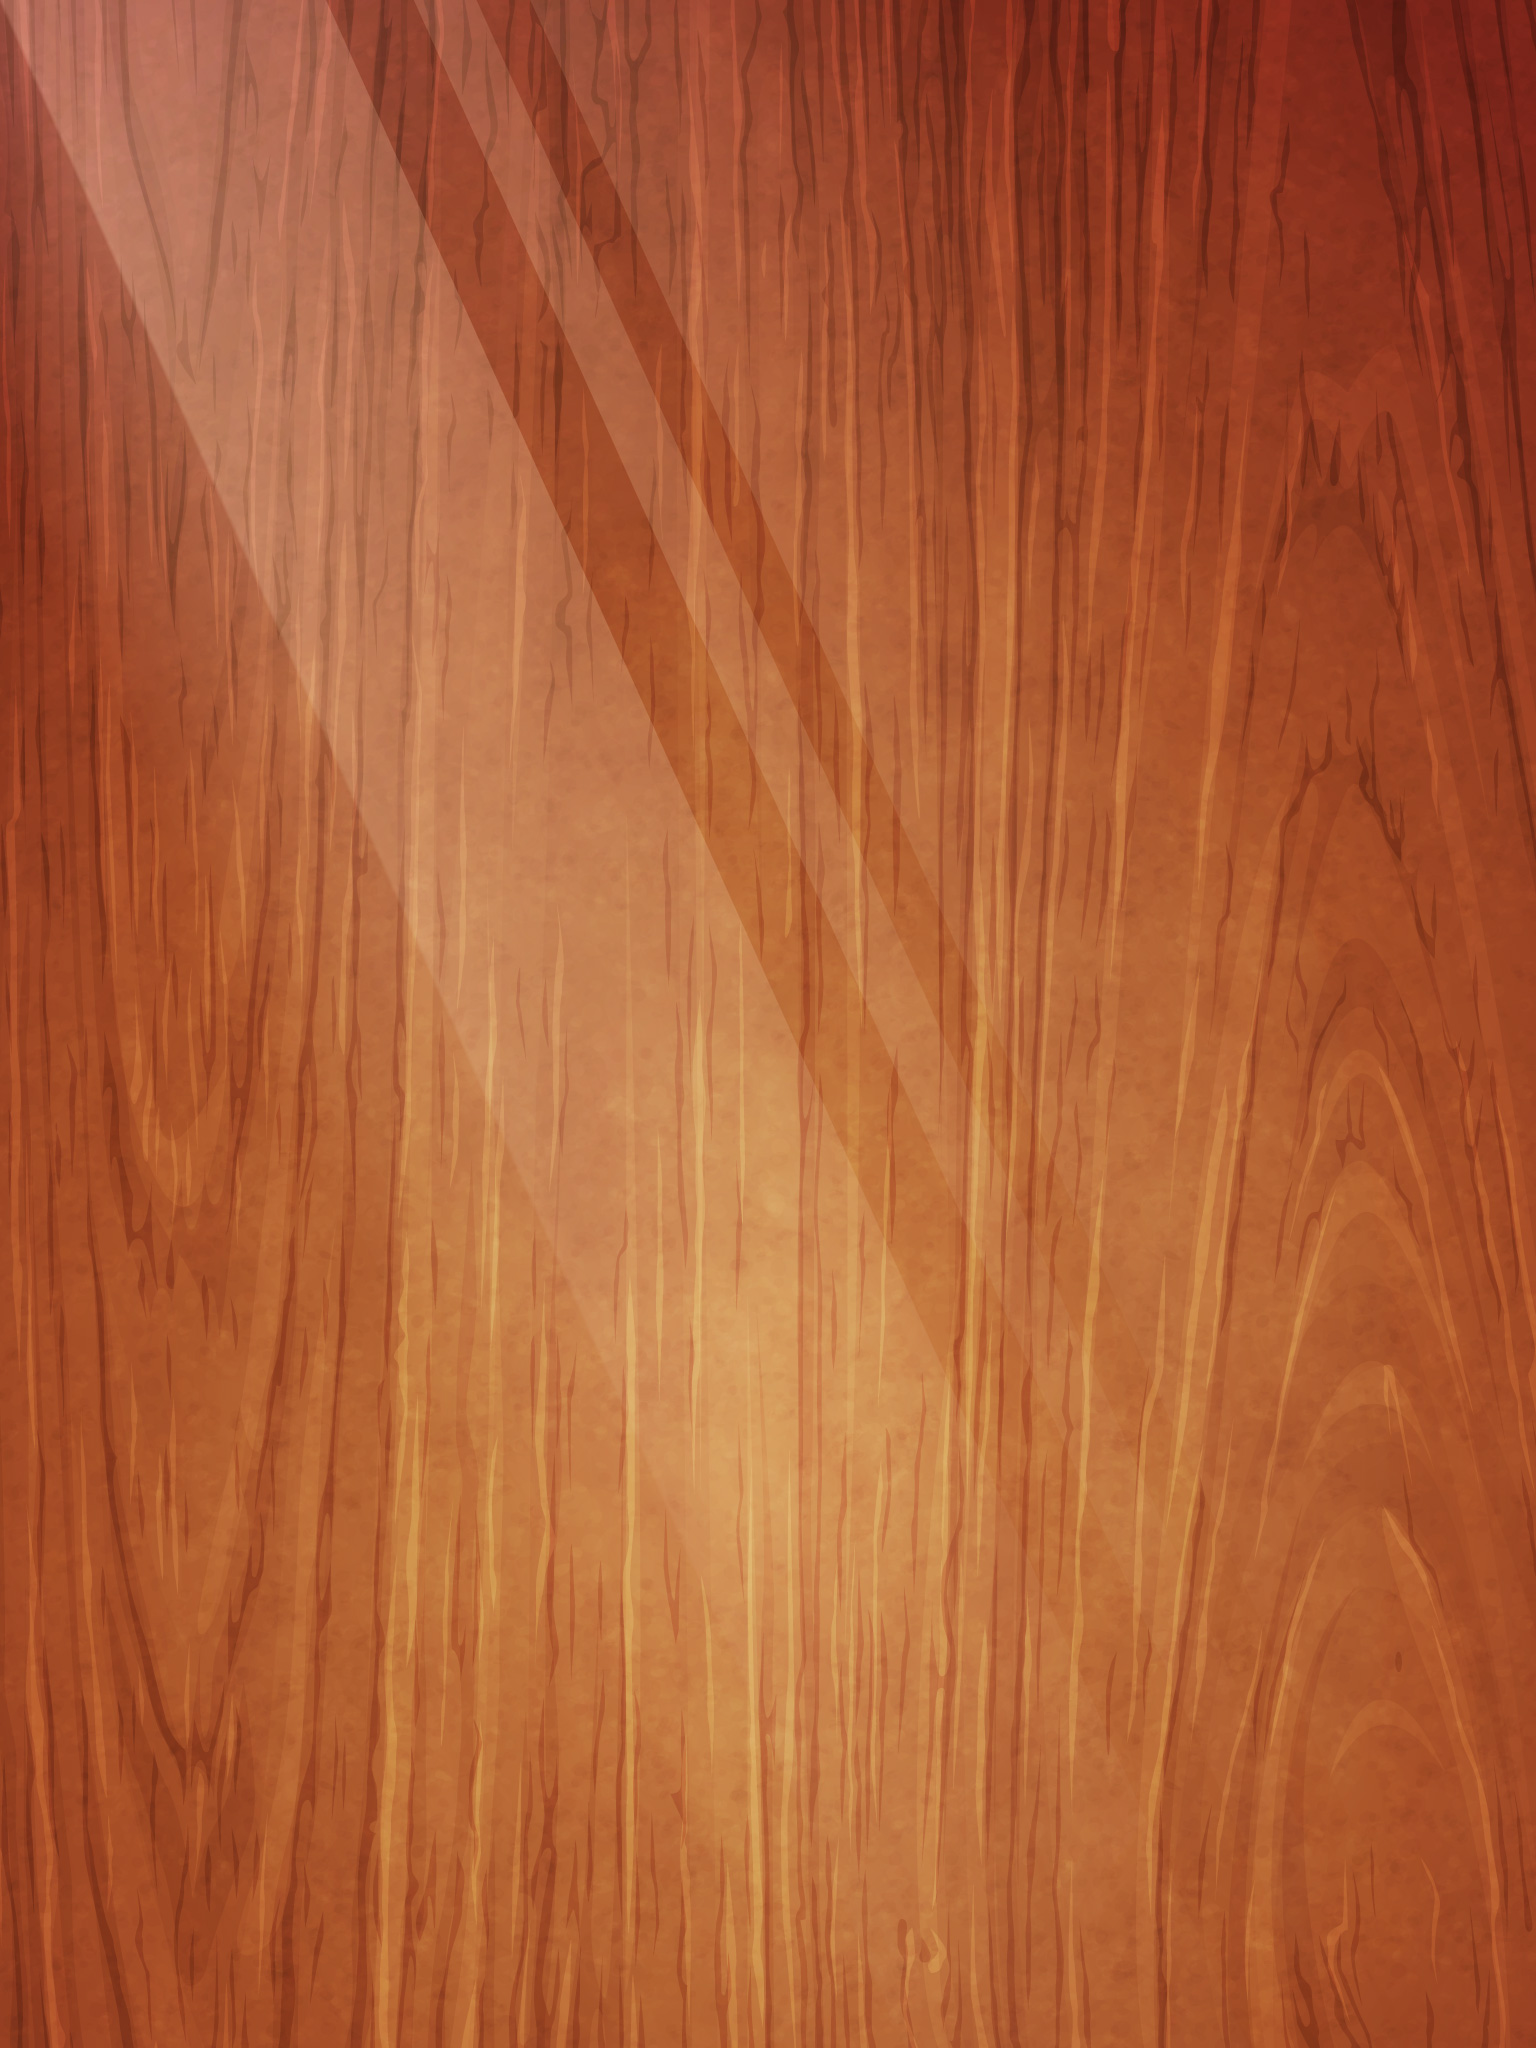 Dribbble - wood-texture-hd.jpg by Monter